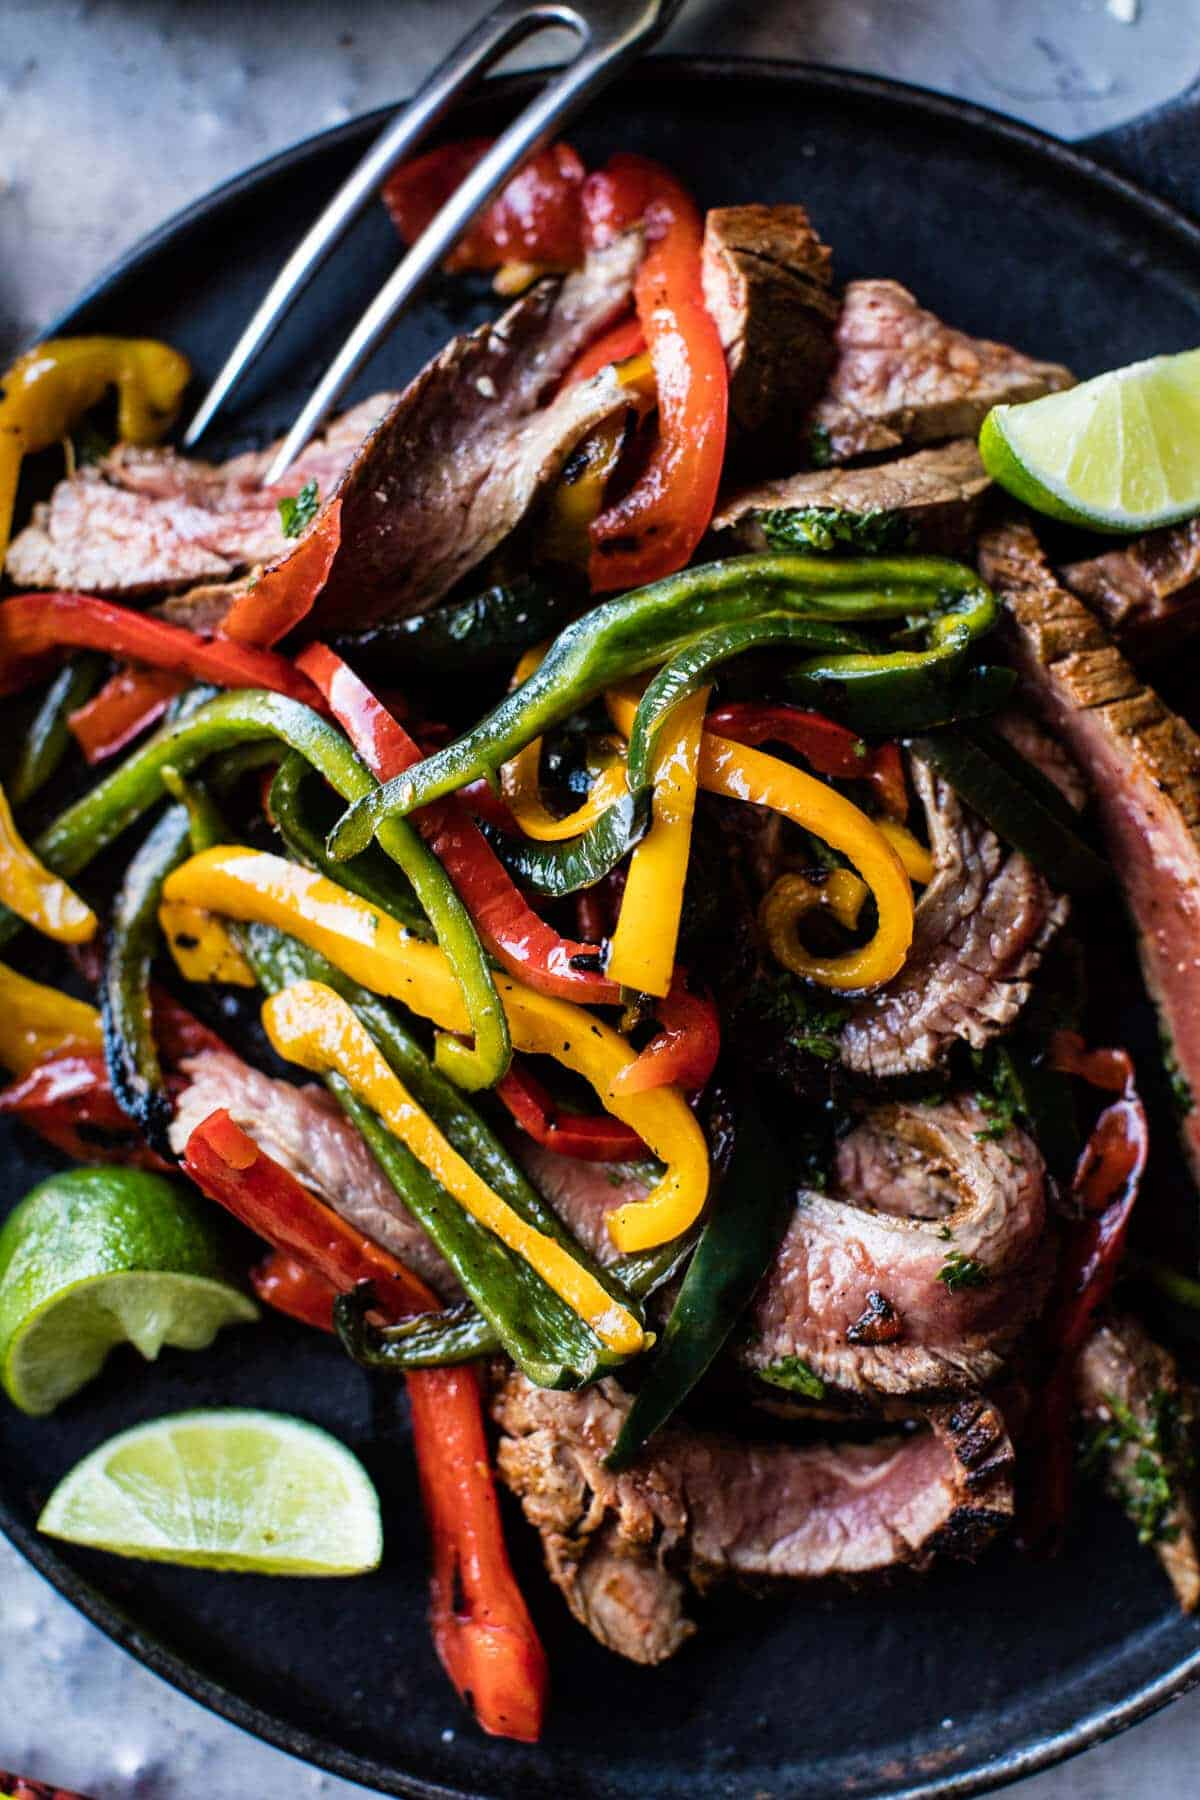 Steak Fajitas with Chimichurri and Cucumber Salsa | halfbakedharvest.com @hbharvest